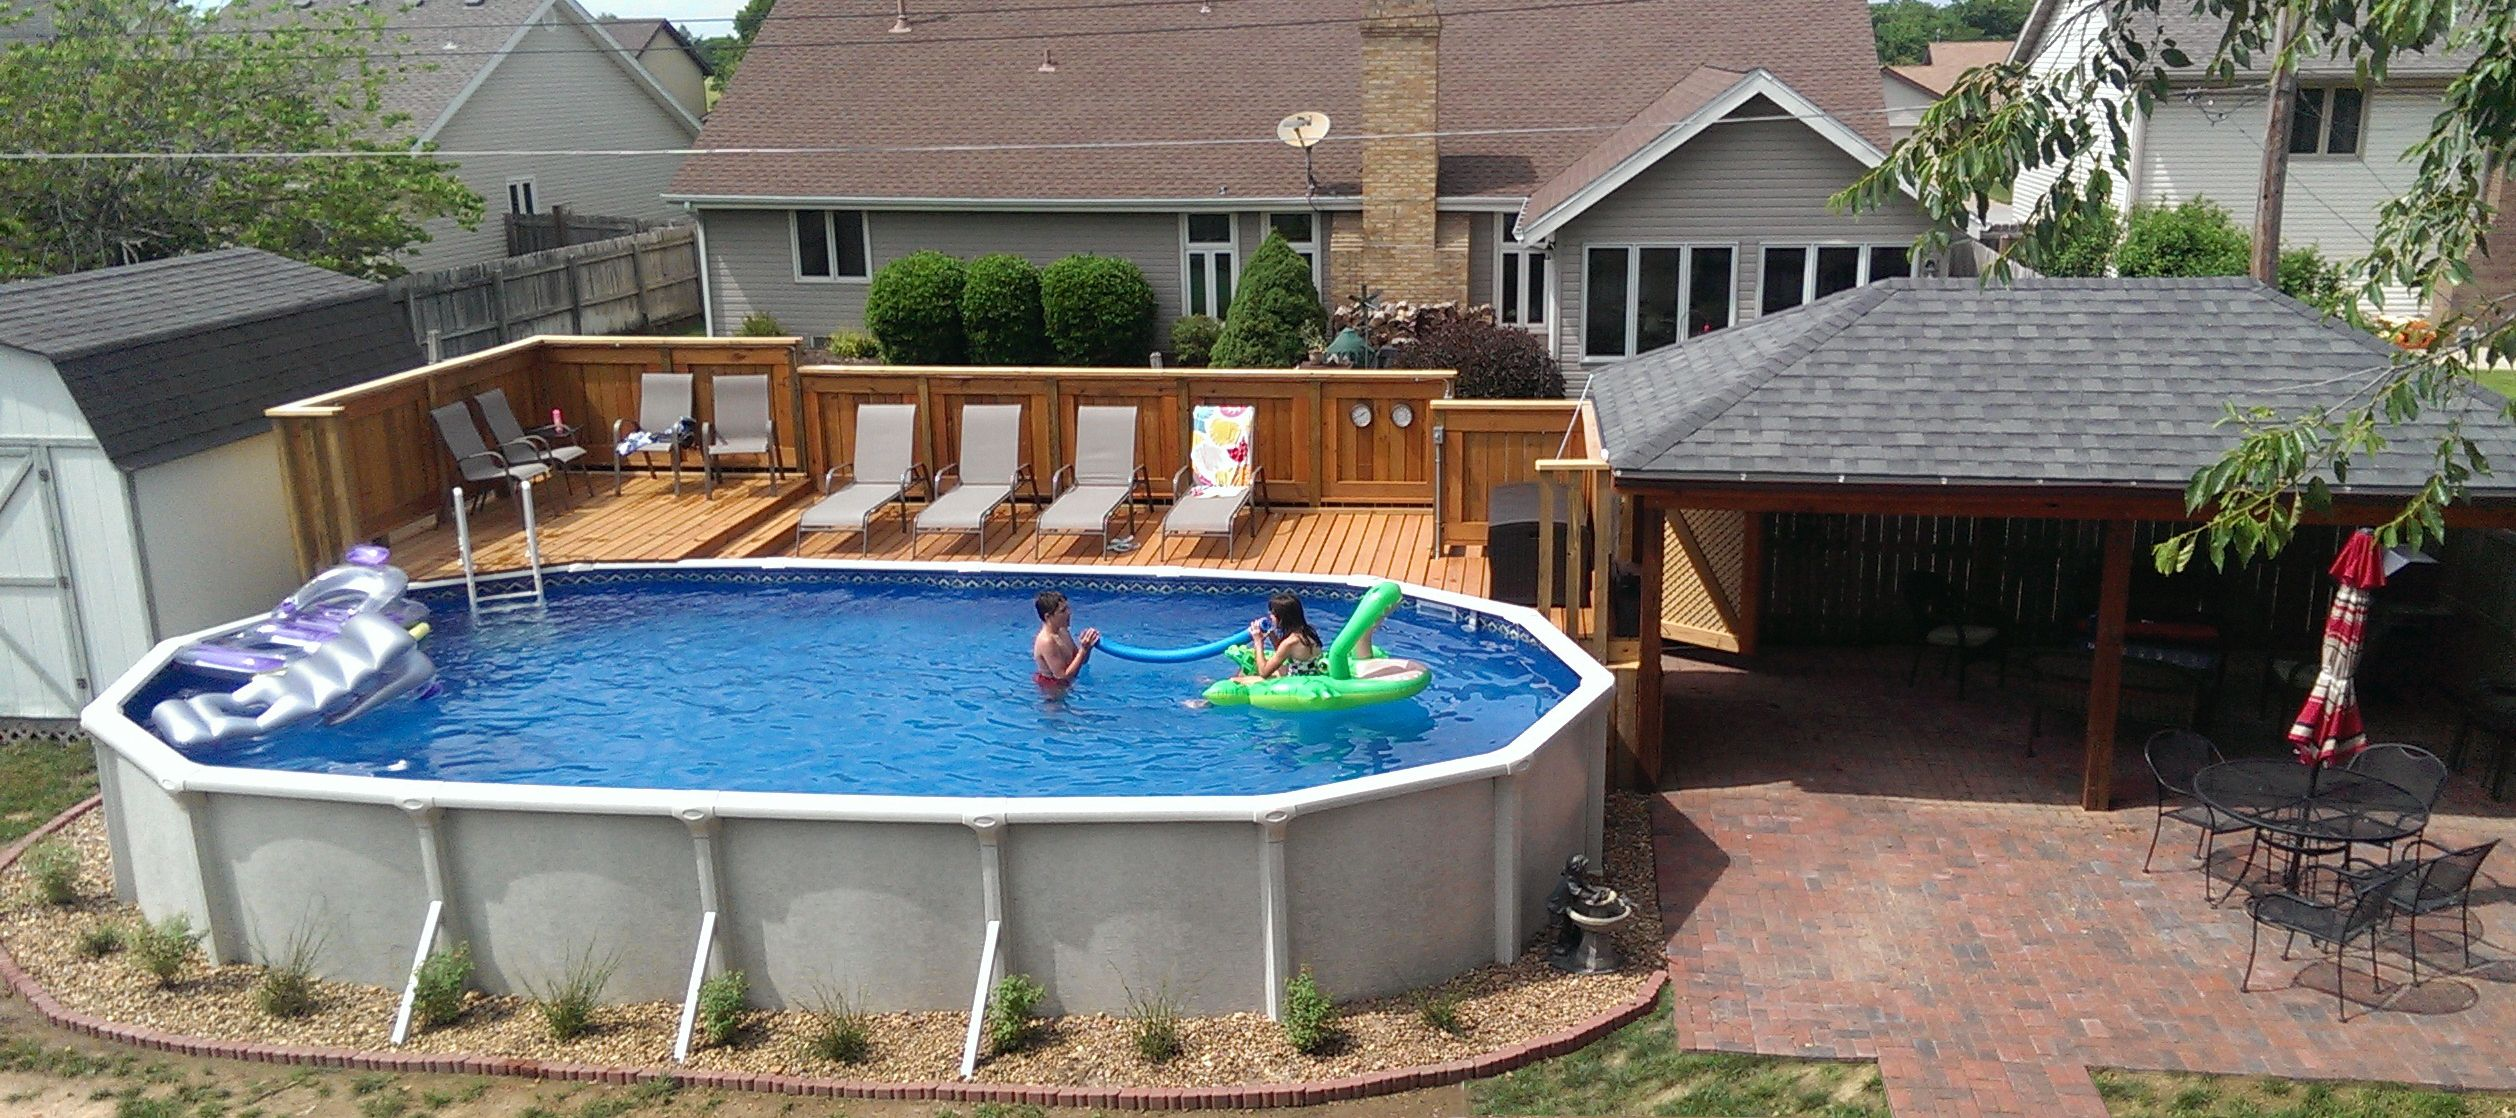 Above ground pools pesquisa google pool pinterest for Bestway piscine service com